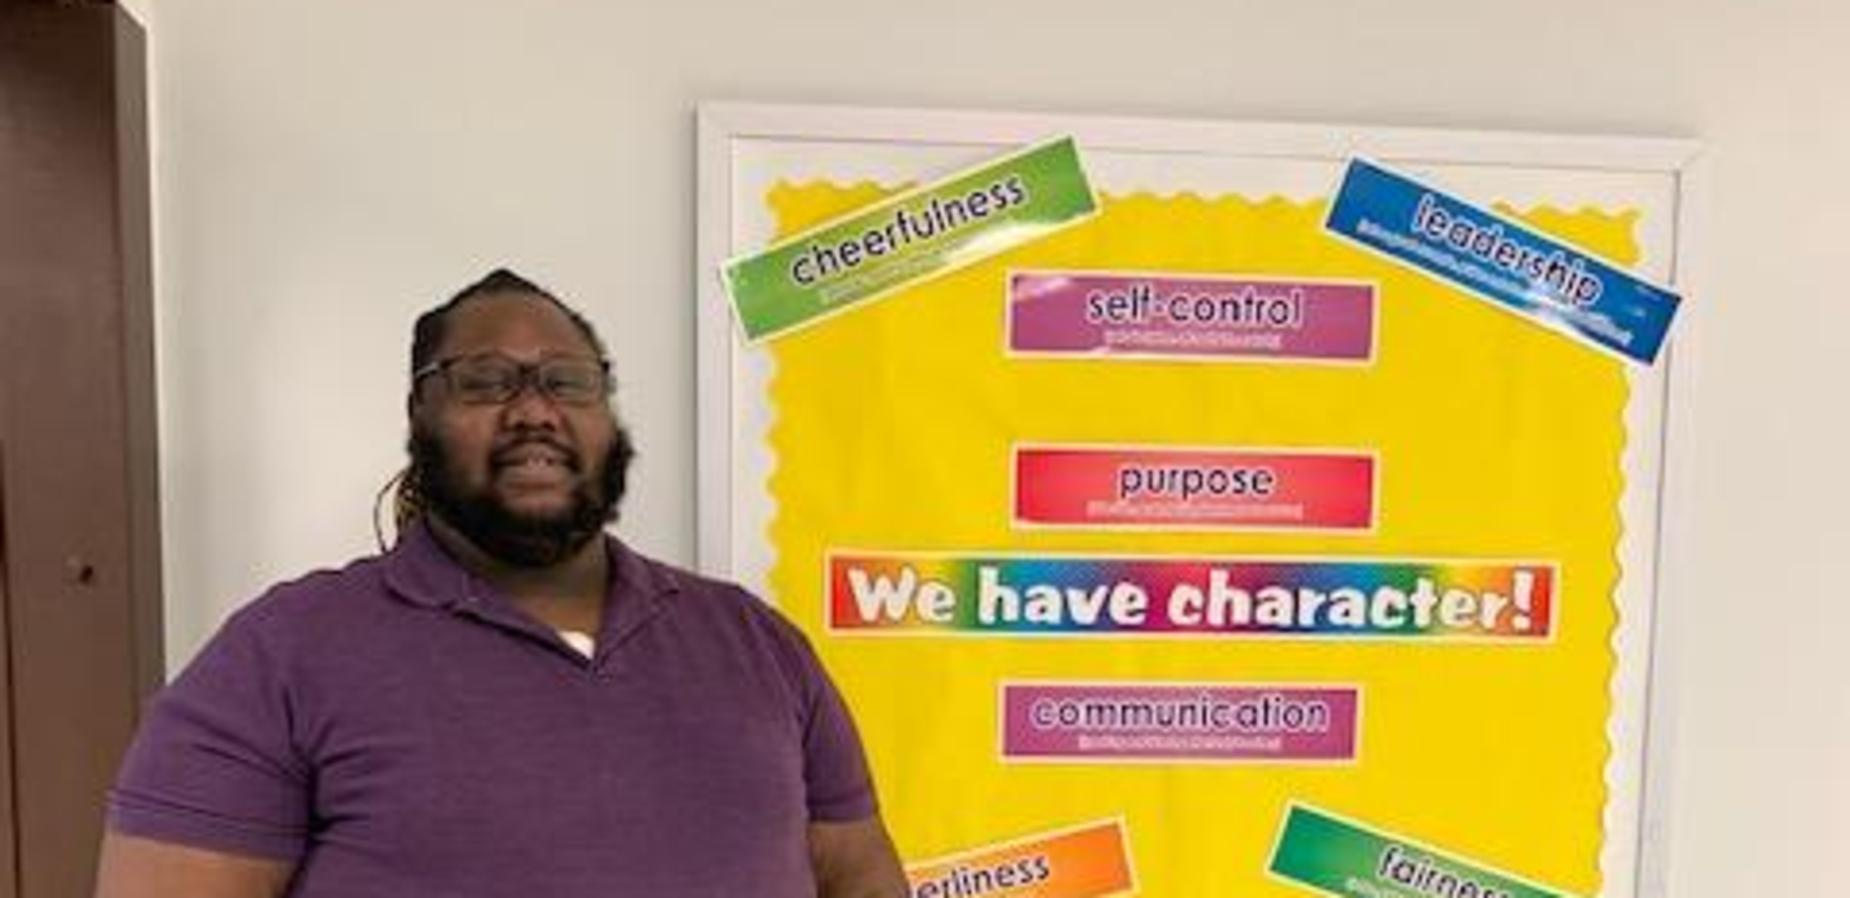 Mr. Martin standing before the character board